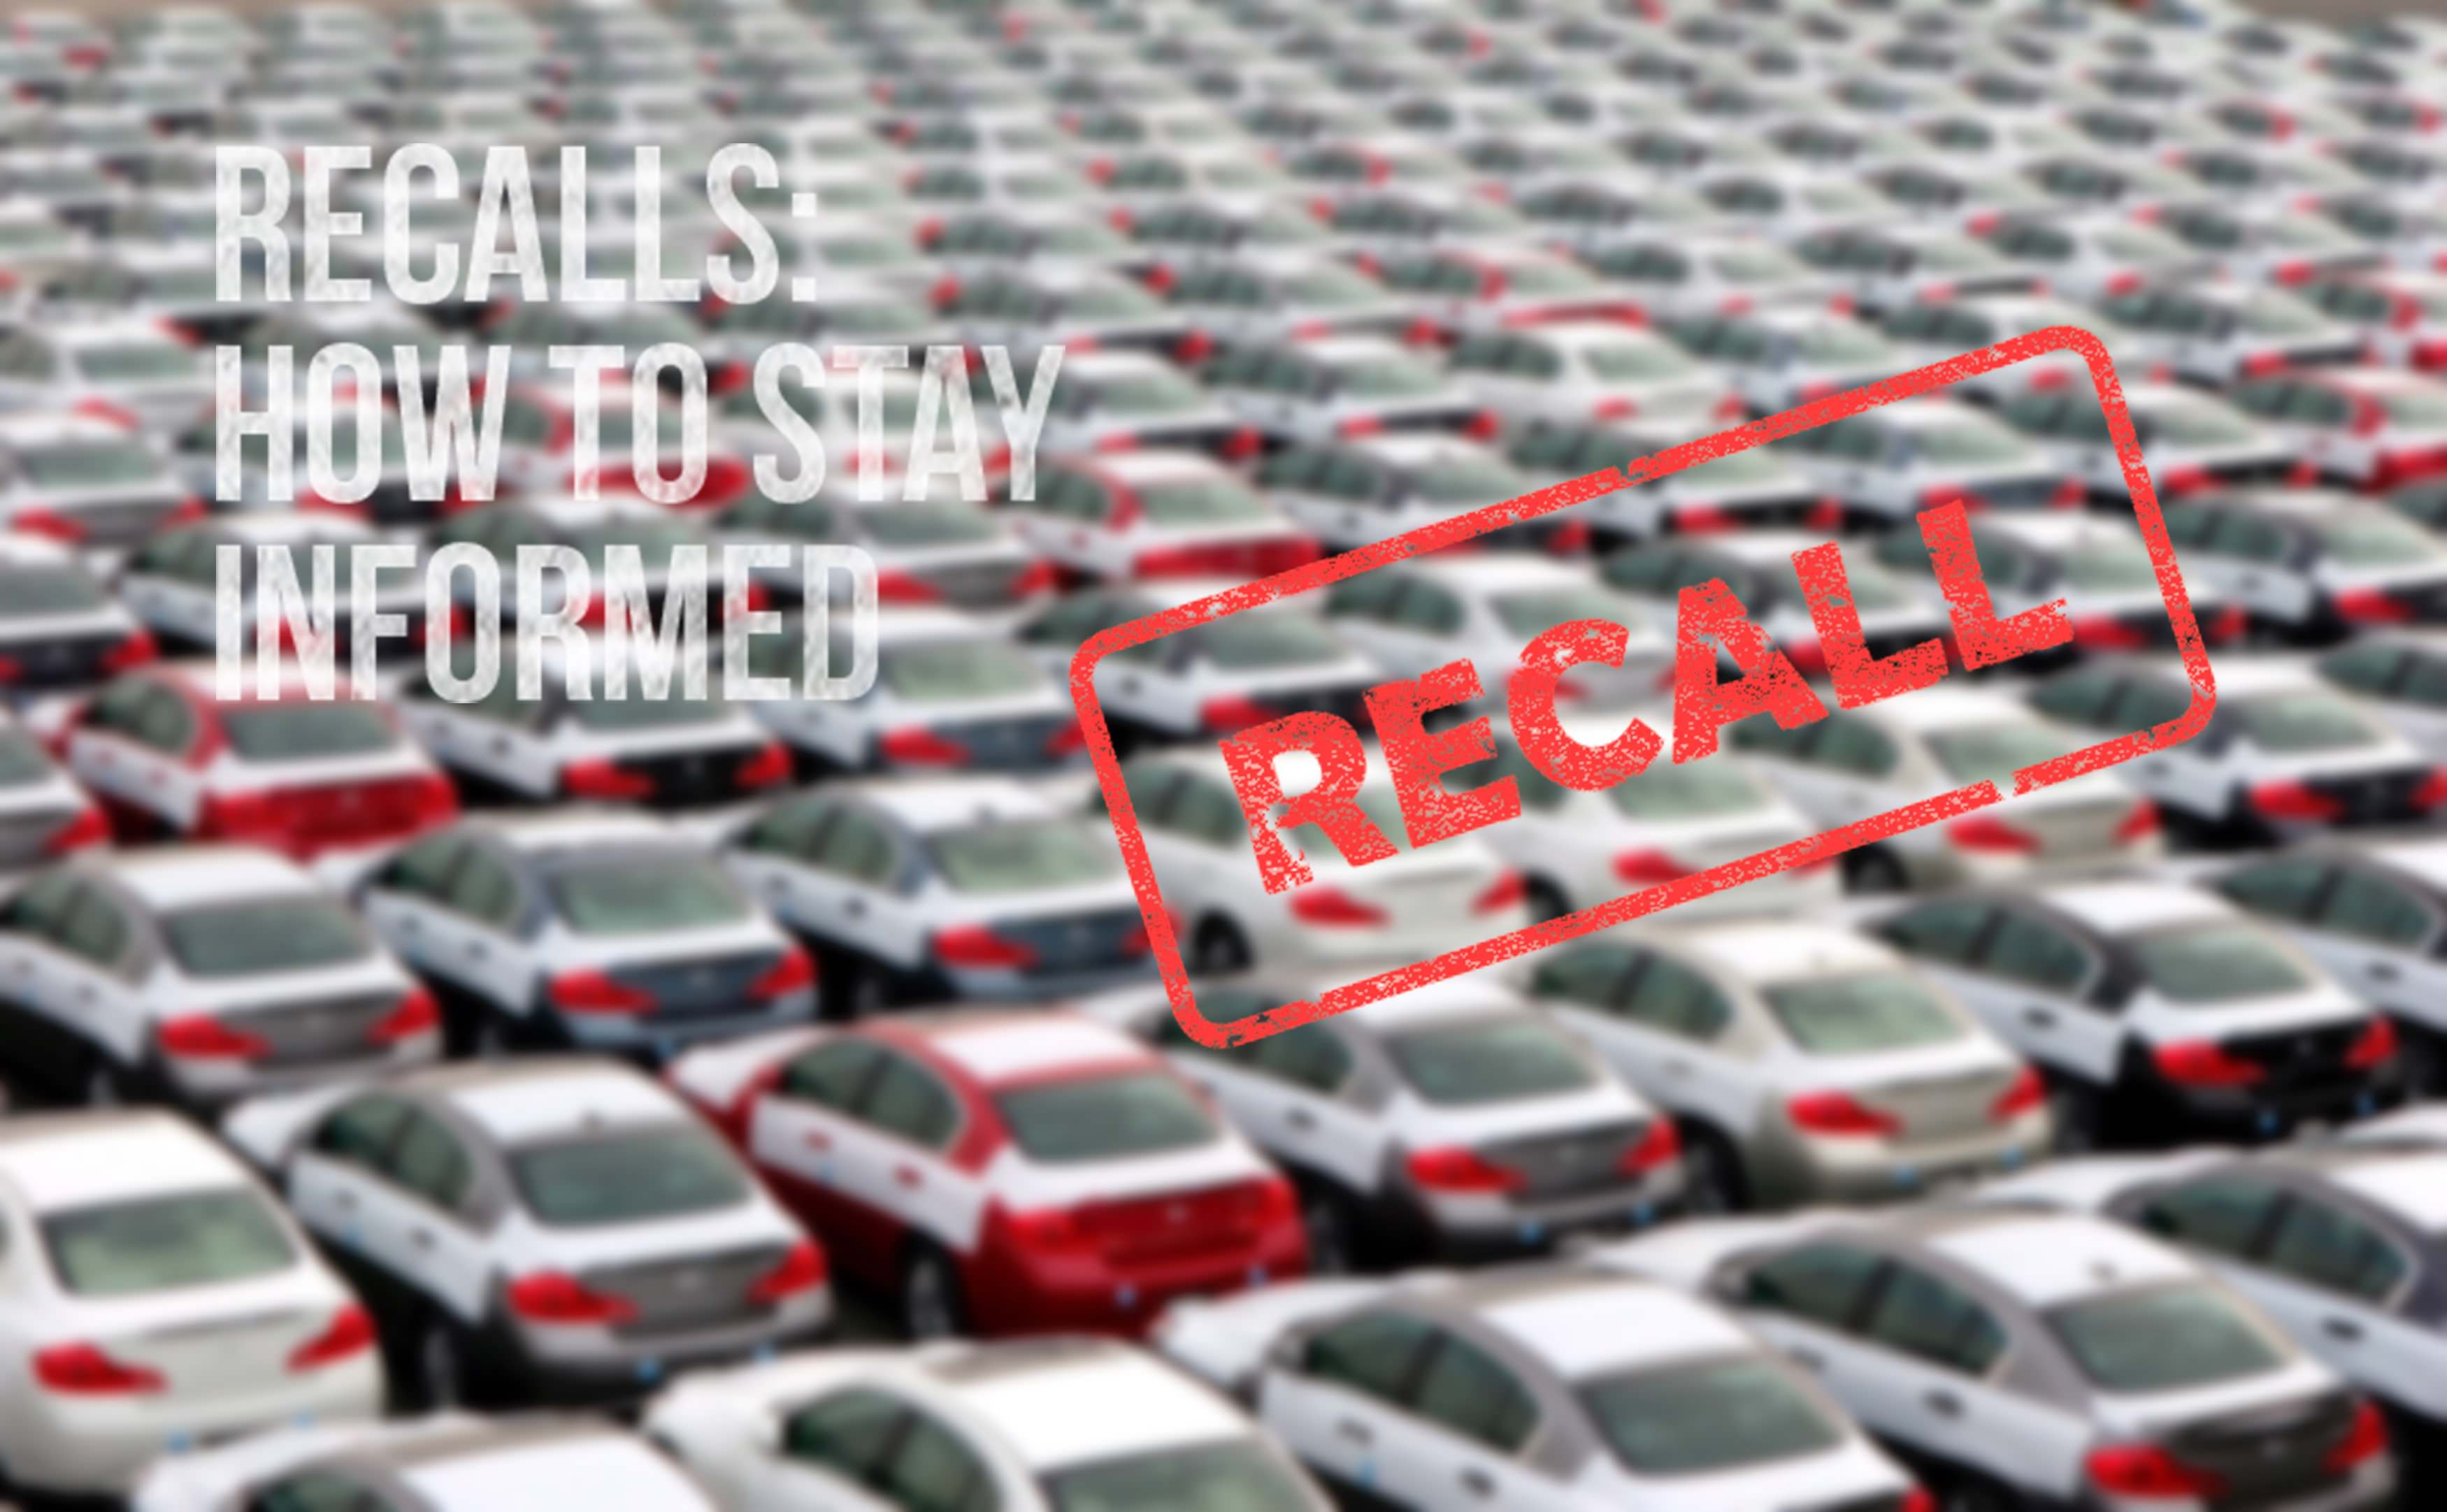 Vehicle Recalls: How to Stay Informed